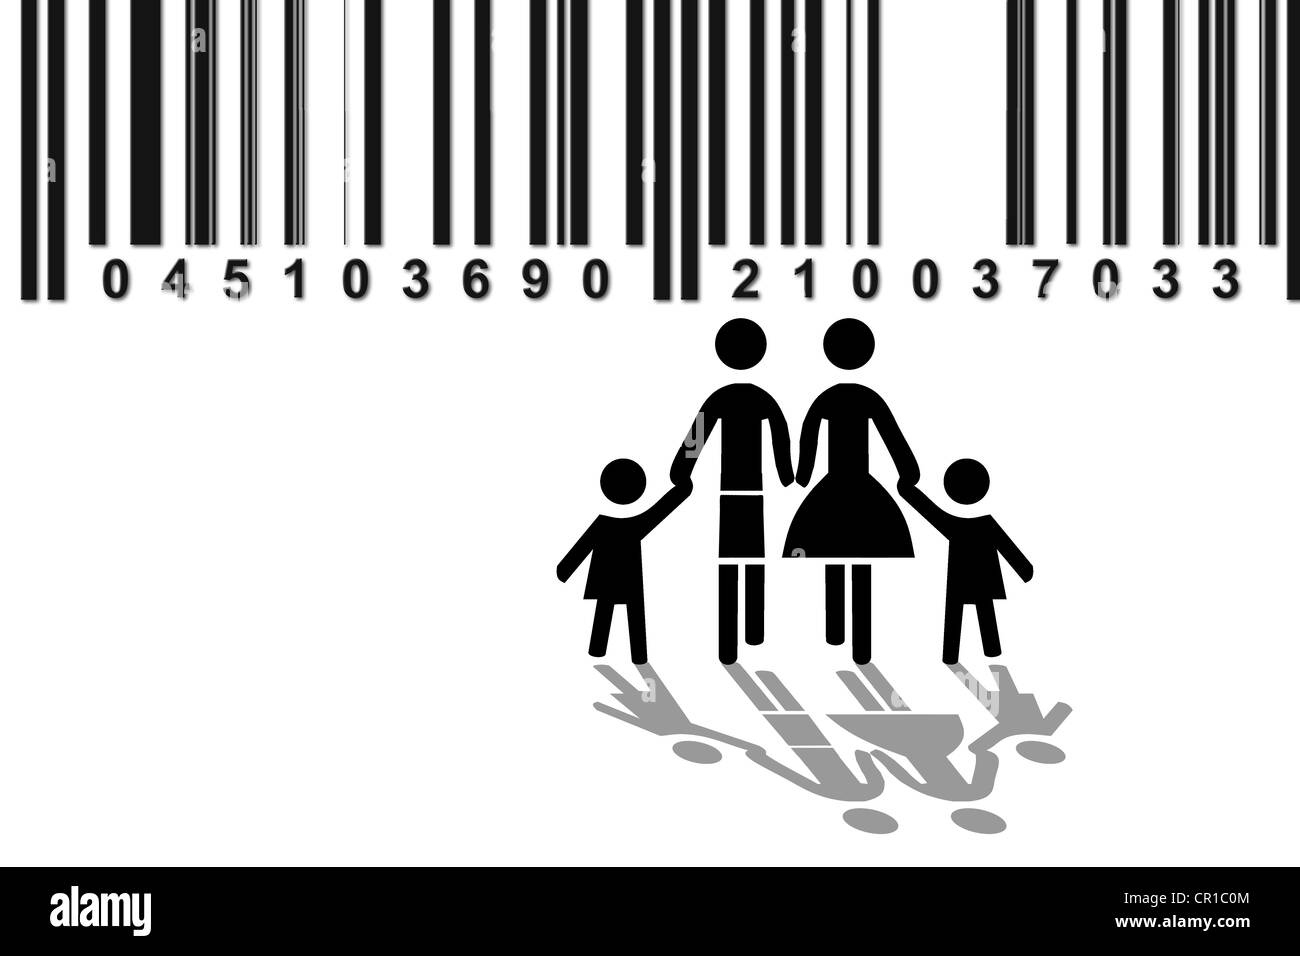 Symbolic Image For Family Observation Of Families With Barcode